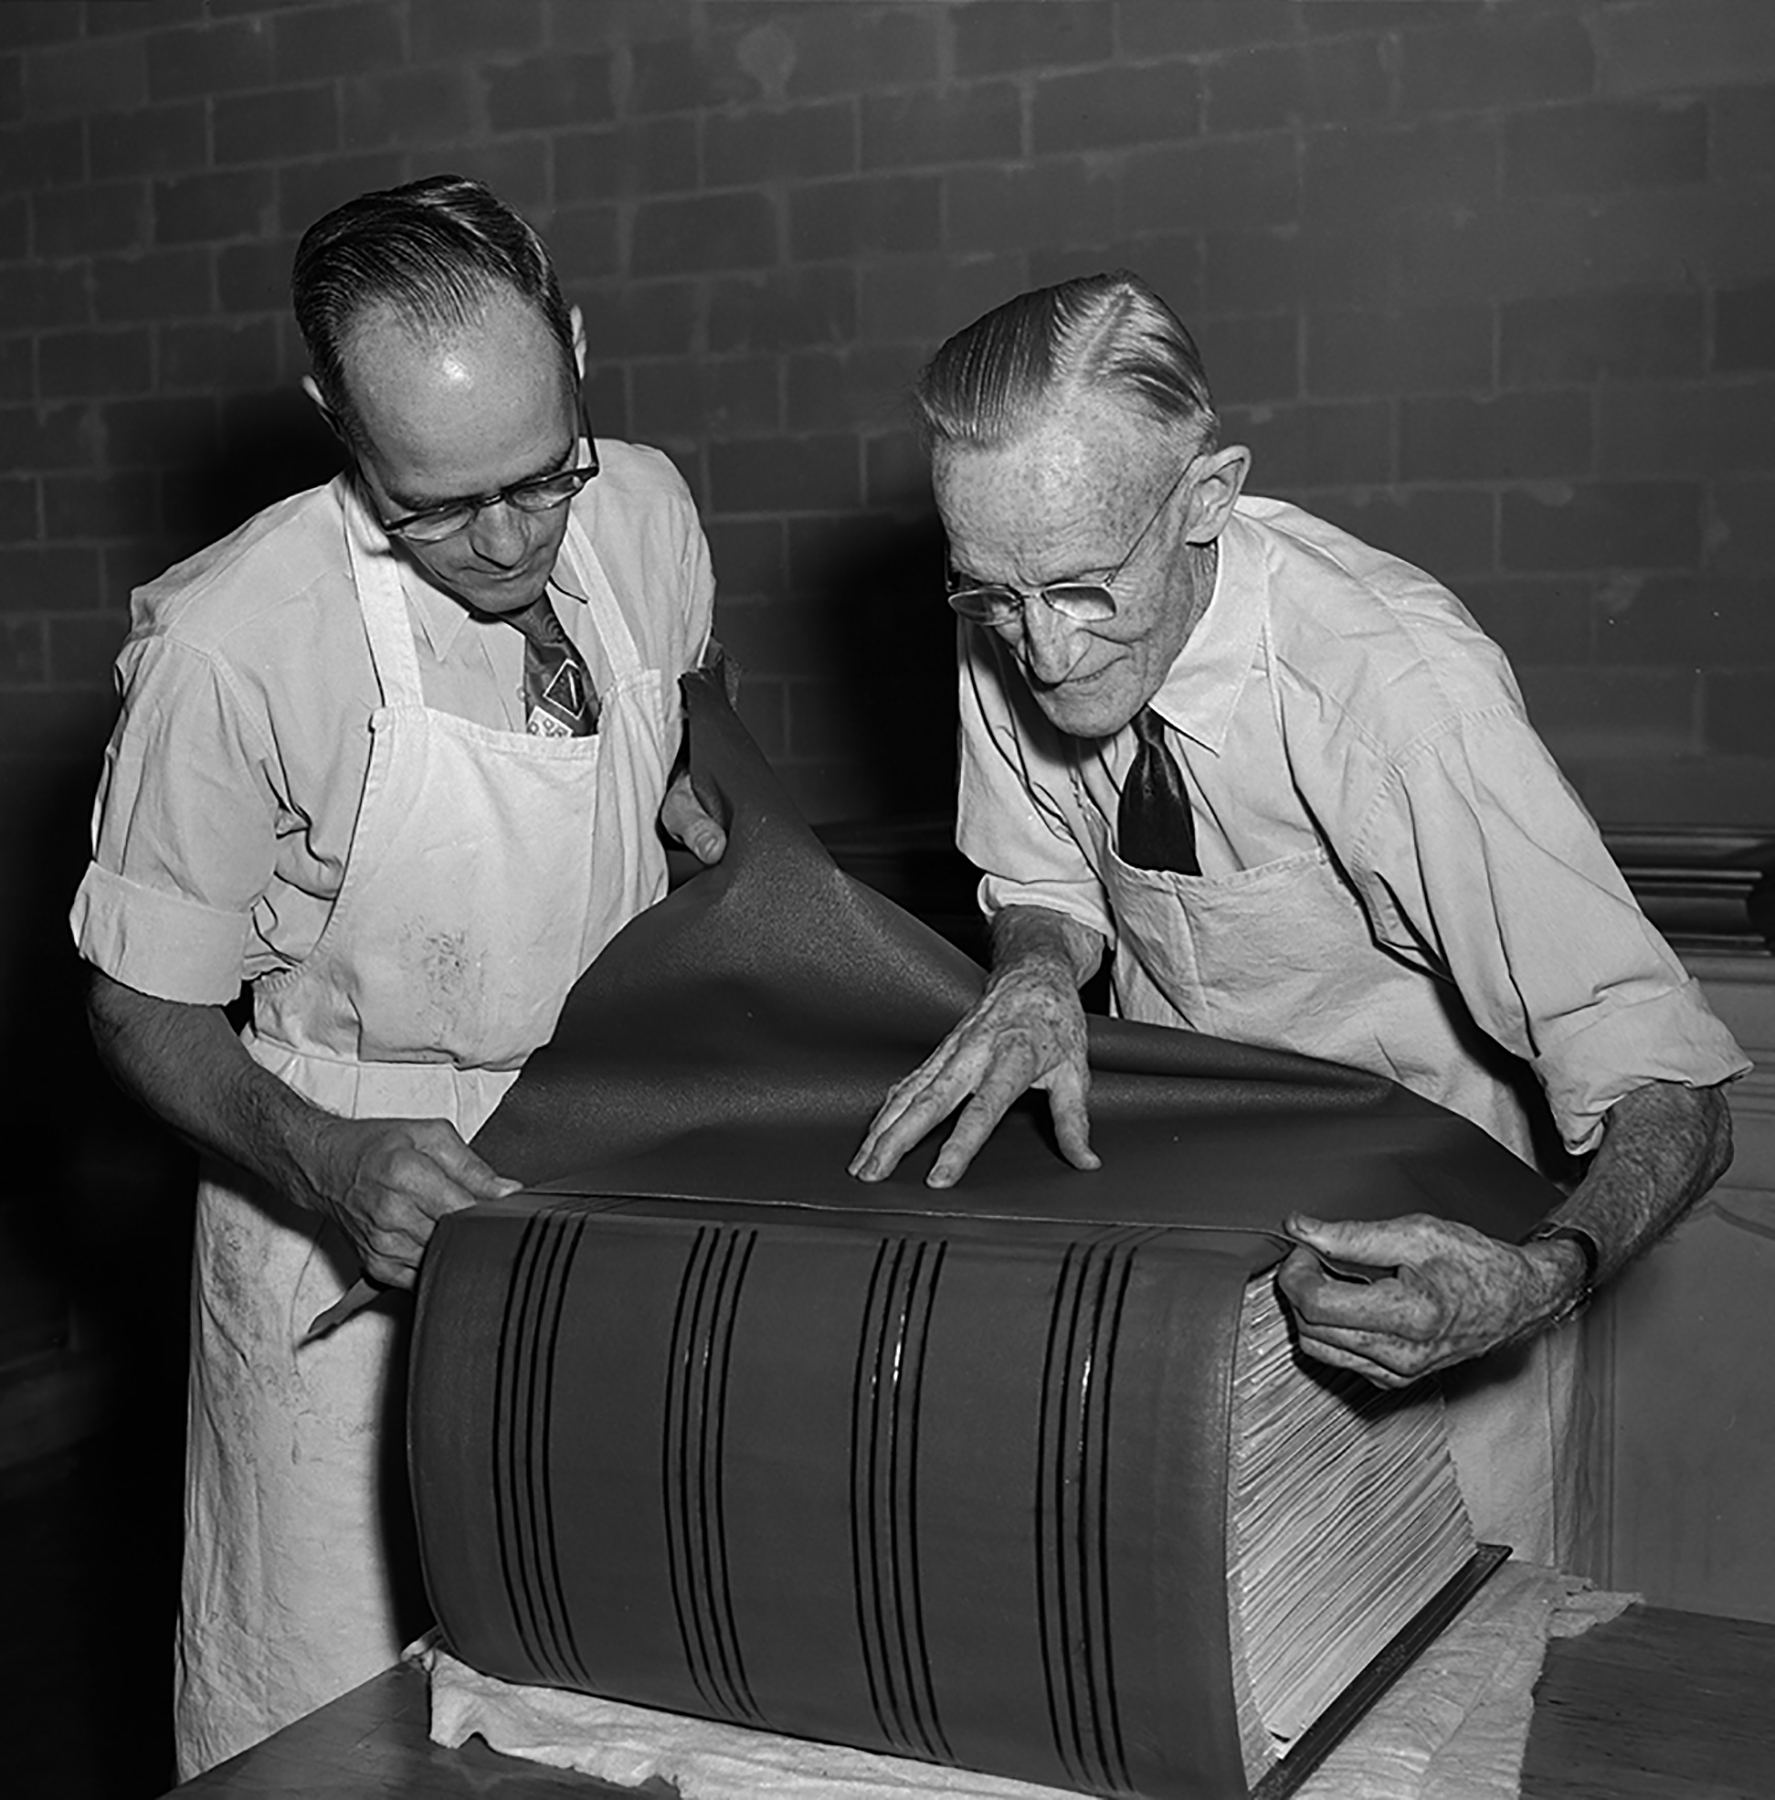 Members of the Queen's Printers staff work on the final sewing, binding and covering of Canada's Second World War Book of Remembrance. The Book, which records the names of 44,891 Canadian servicemen and servicewomen who gave their lives during the Second World War, received a leather covering, the final stage of its preparation for dedication by Governor General and Commander-in-Chief of Canada Vincent Massey in the Memorial Chamber of the Parliament Buildings in Ottawa on Remembrance Day, November 11, 1957. PHOTO: DND Archives, Z-8141-B